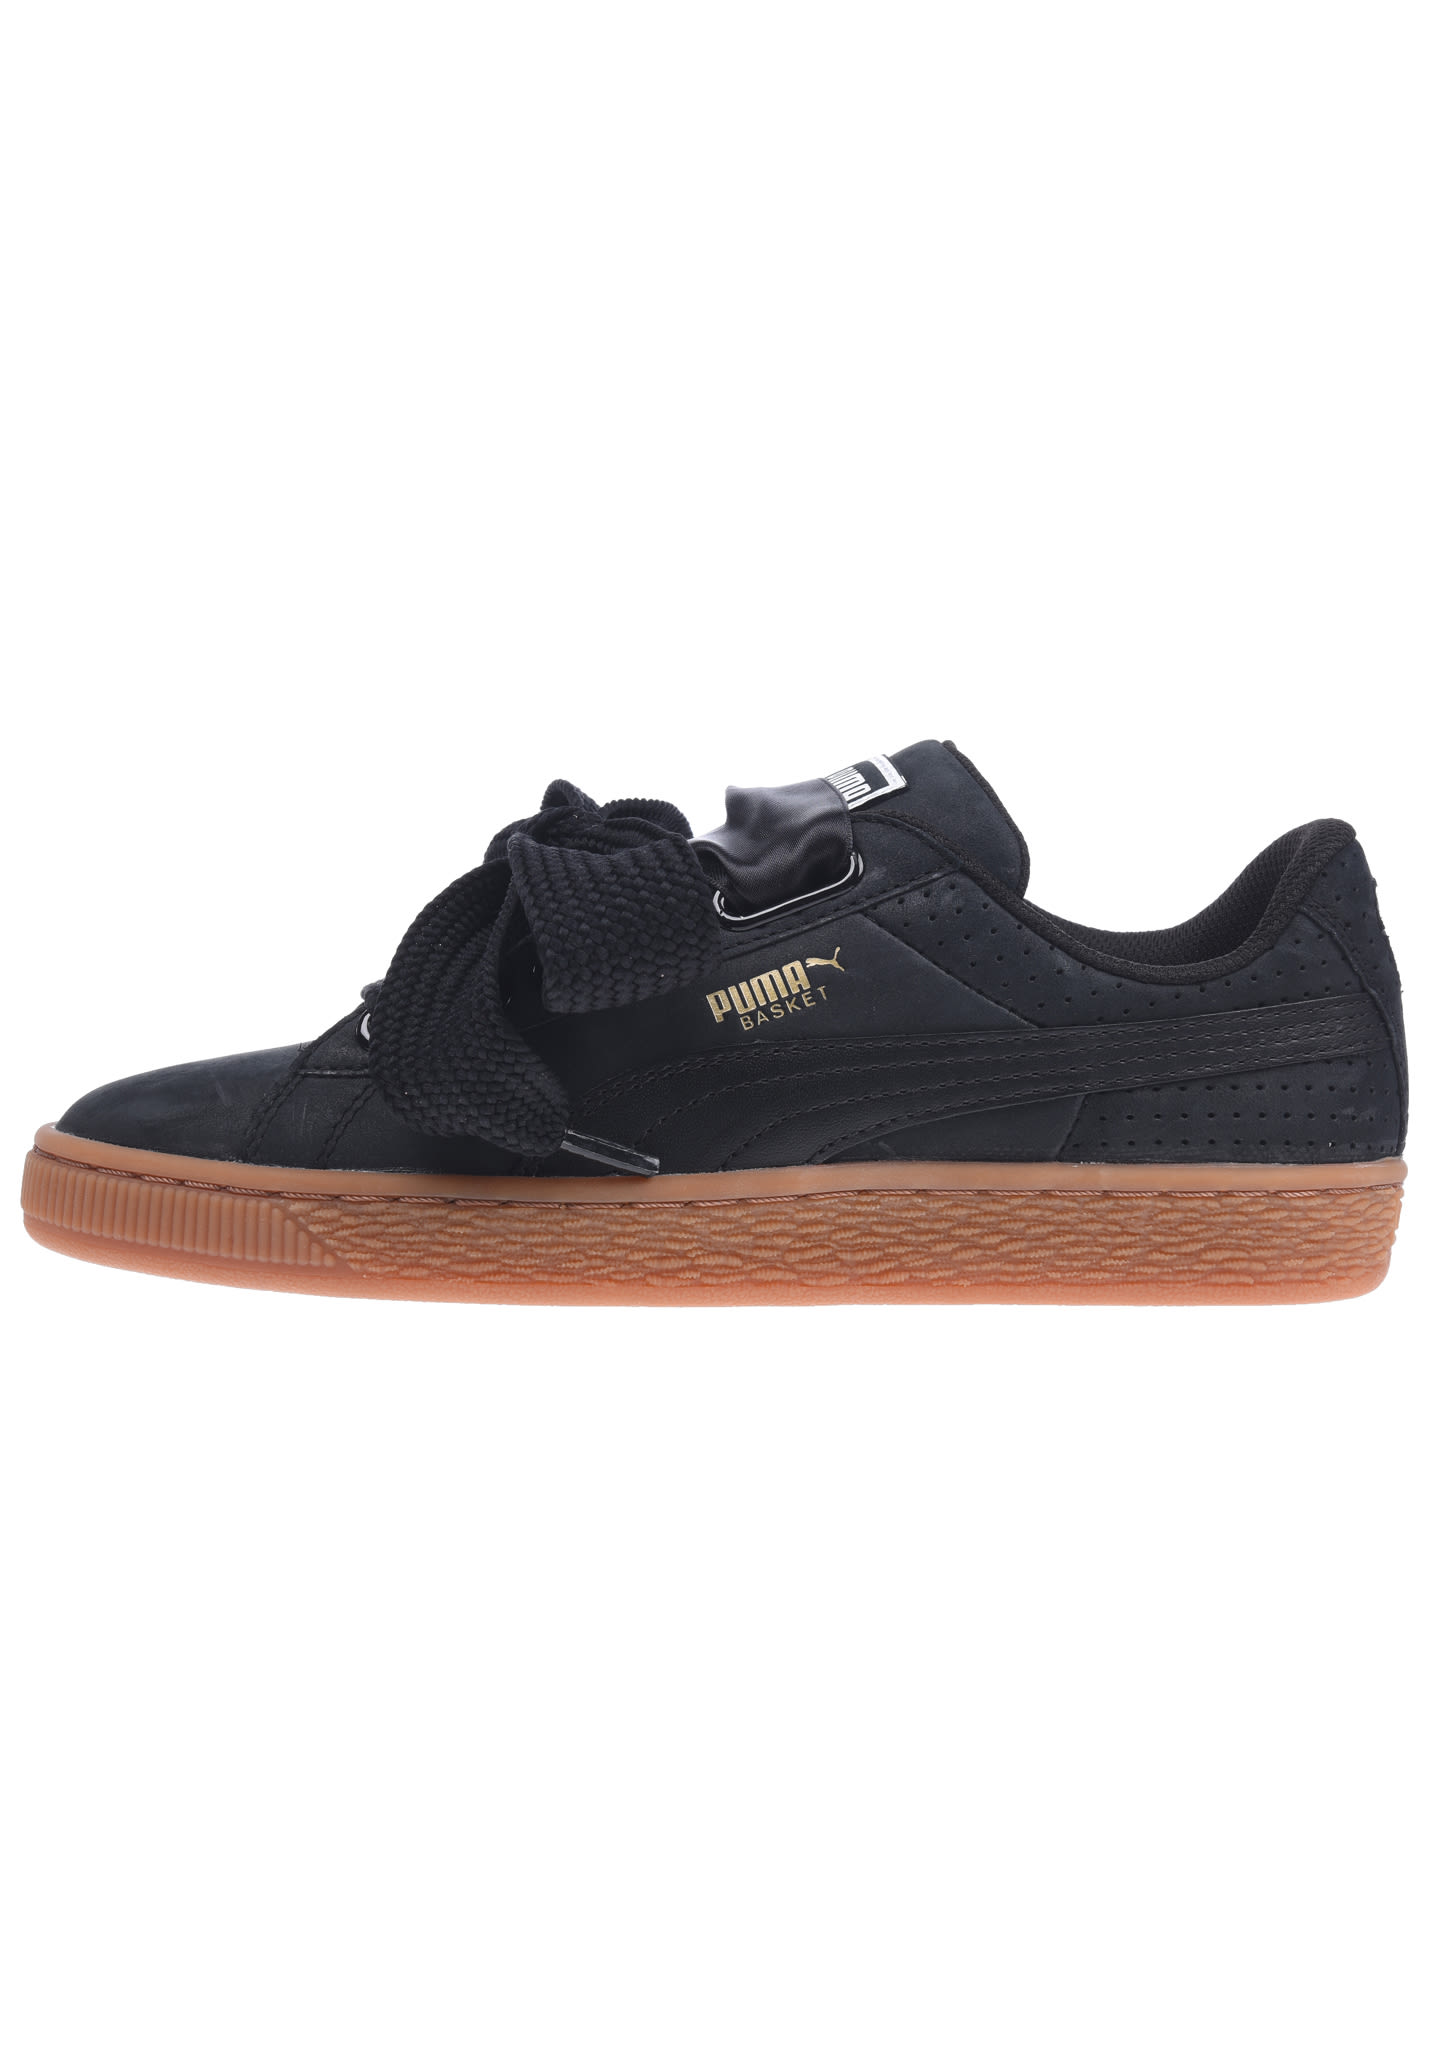 cheaper 10aa2 d5b4e Puma Basket Heart Perf Gum - Sneakers for Women - Black